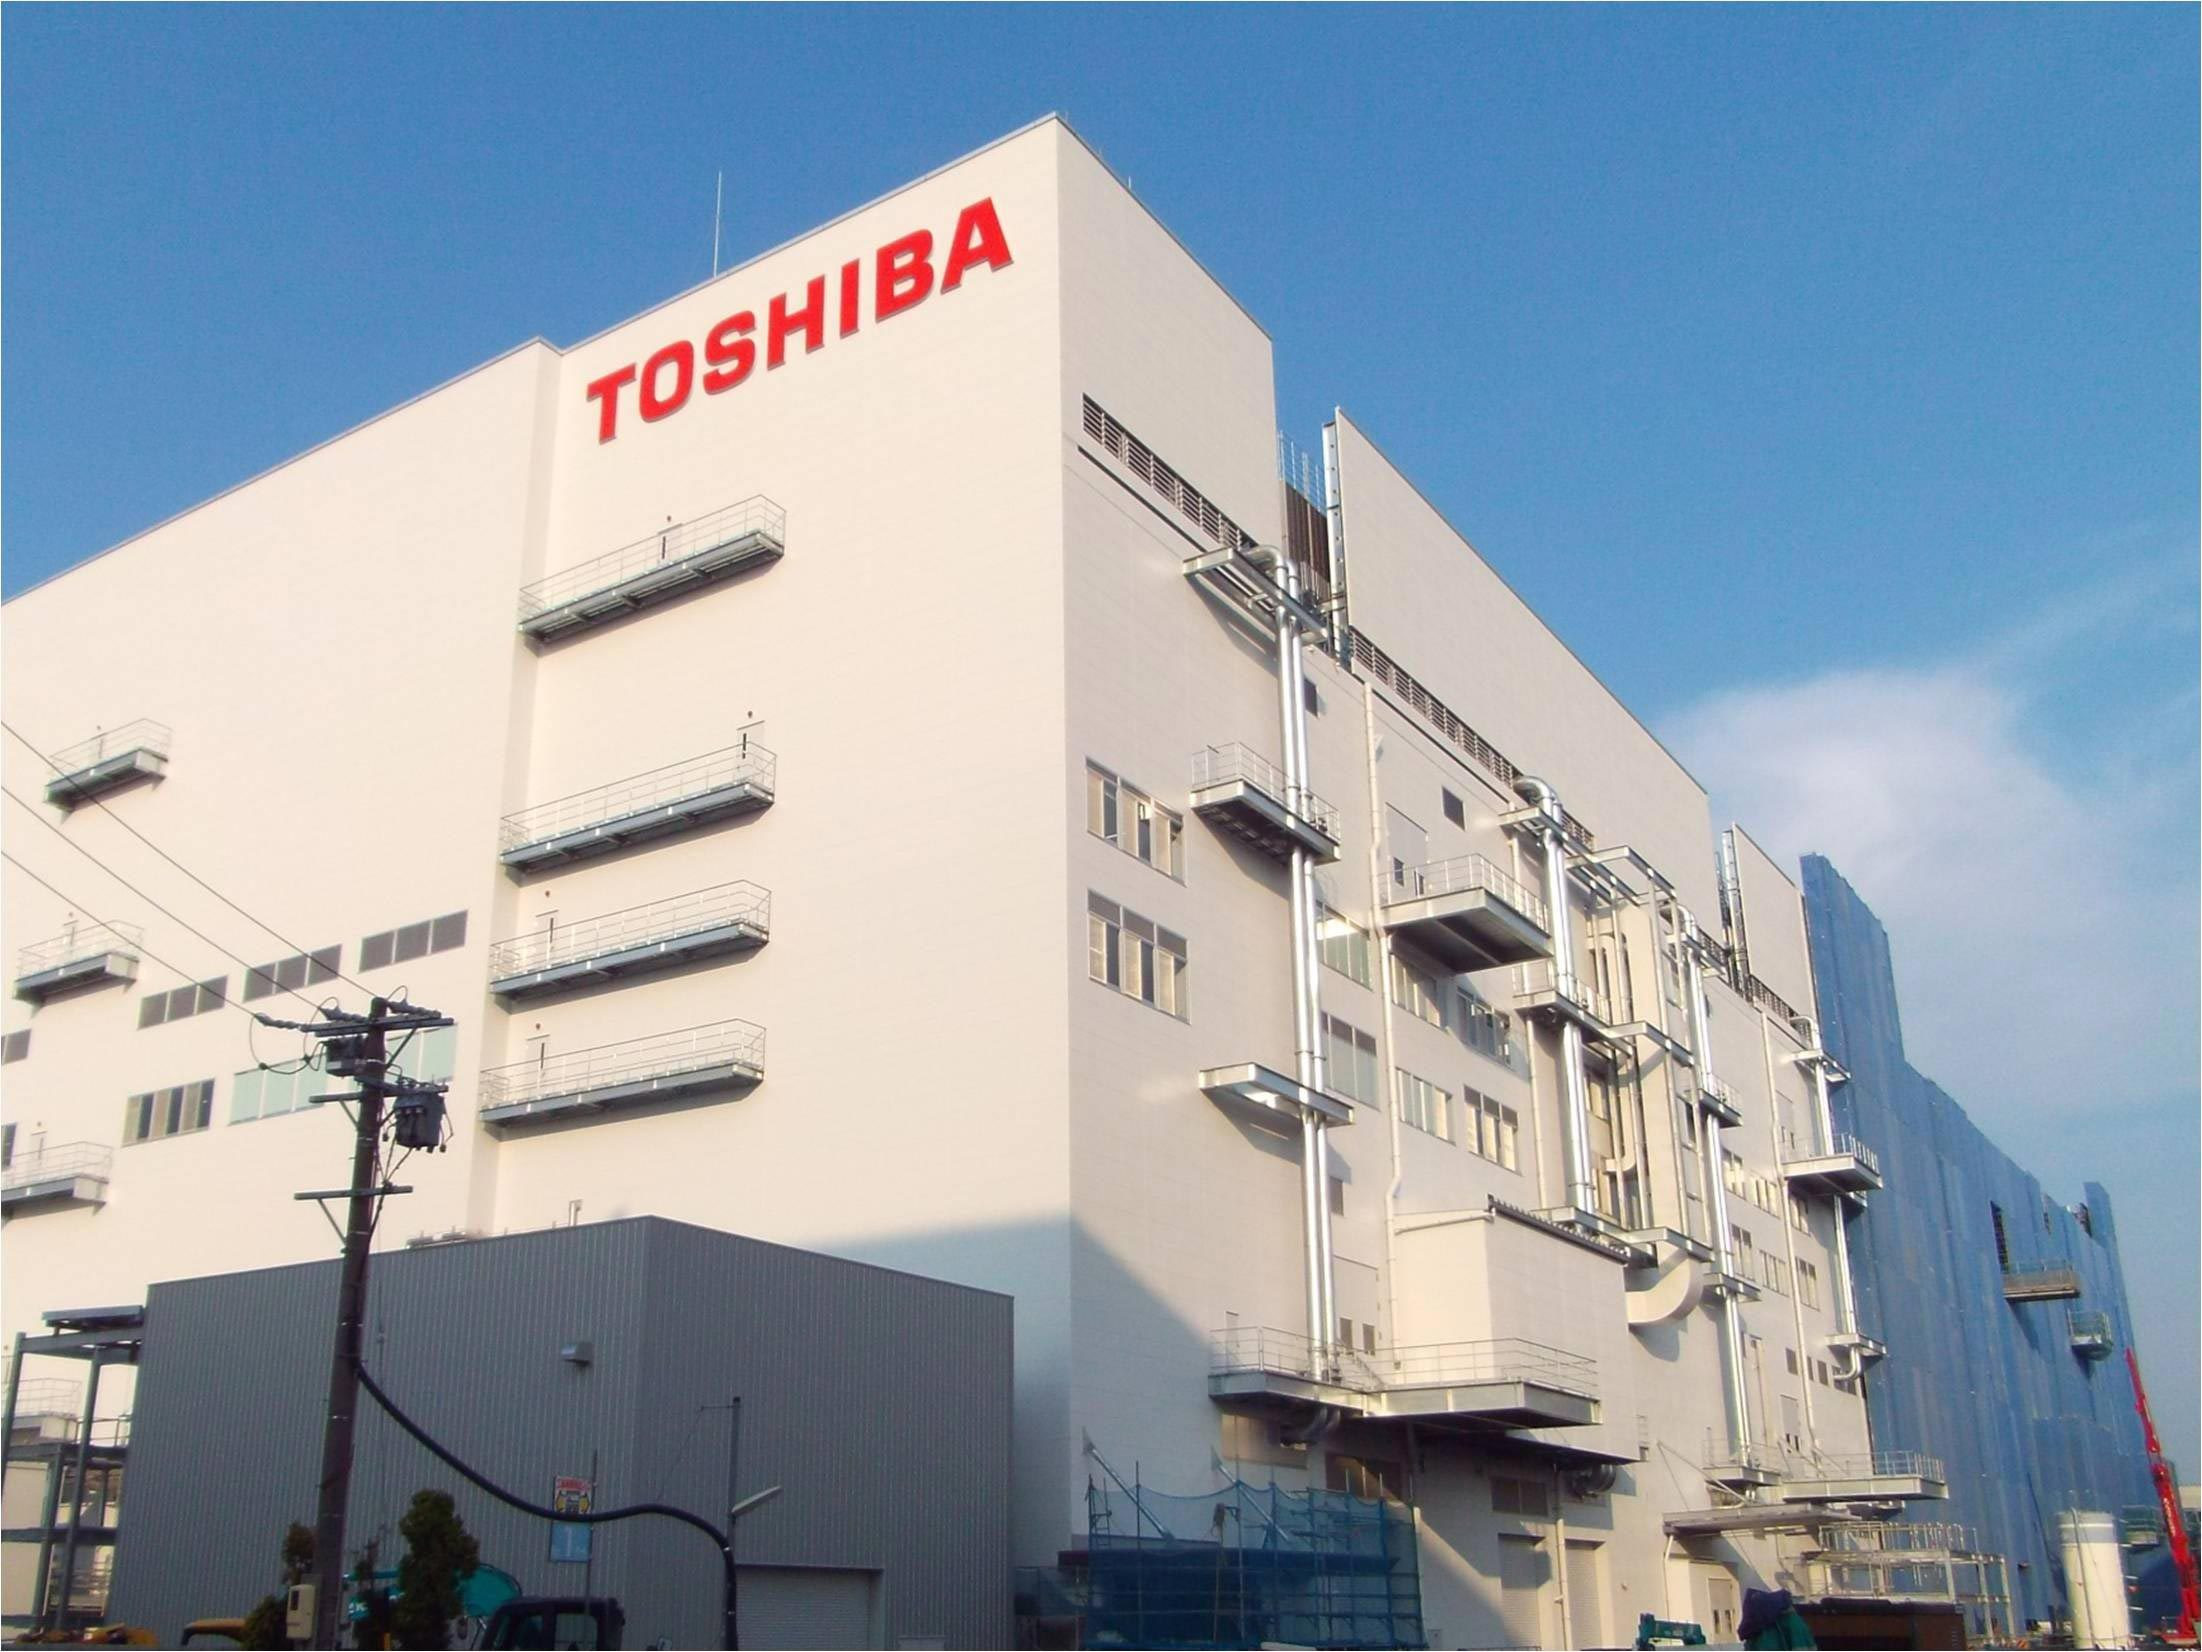 Toshiba and SanDisk Start of Equipment Installation at Yokkaichi Plant